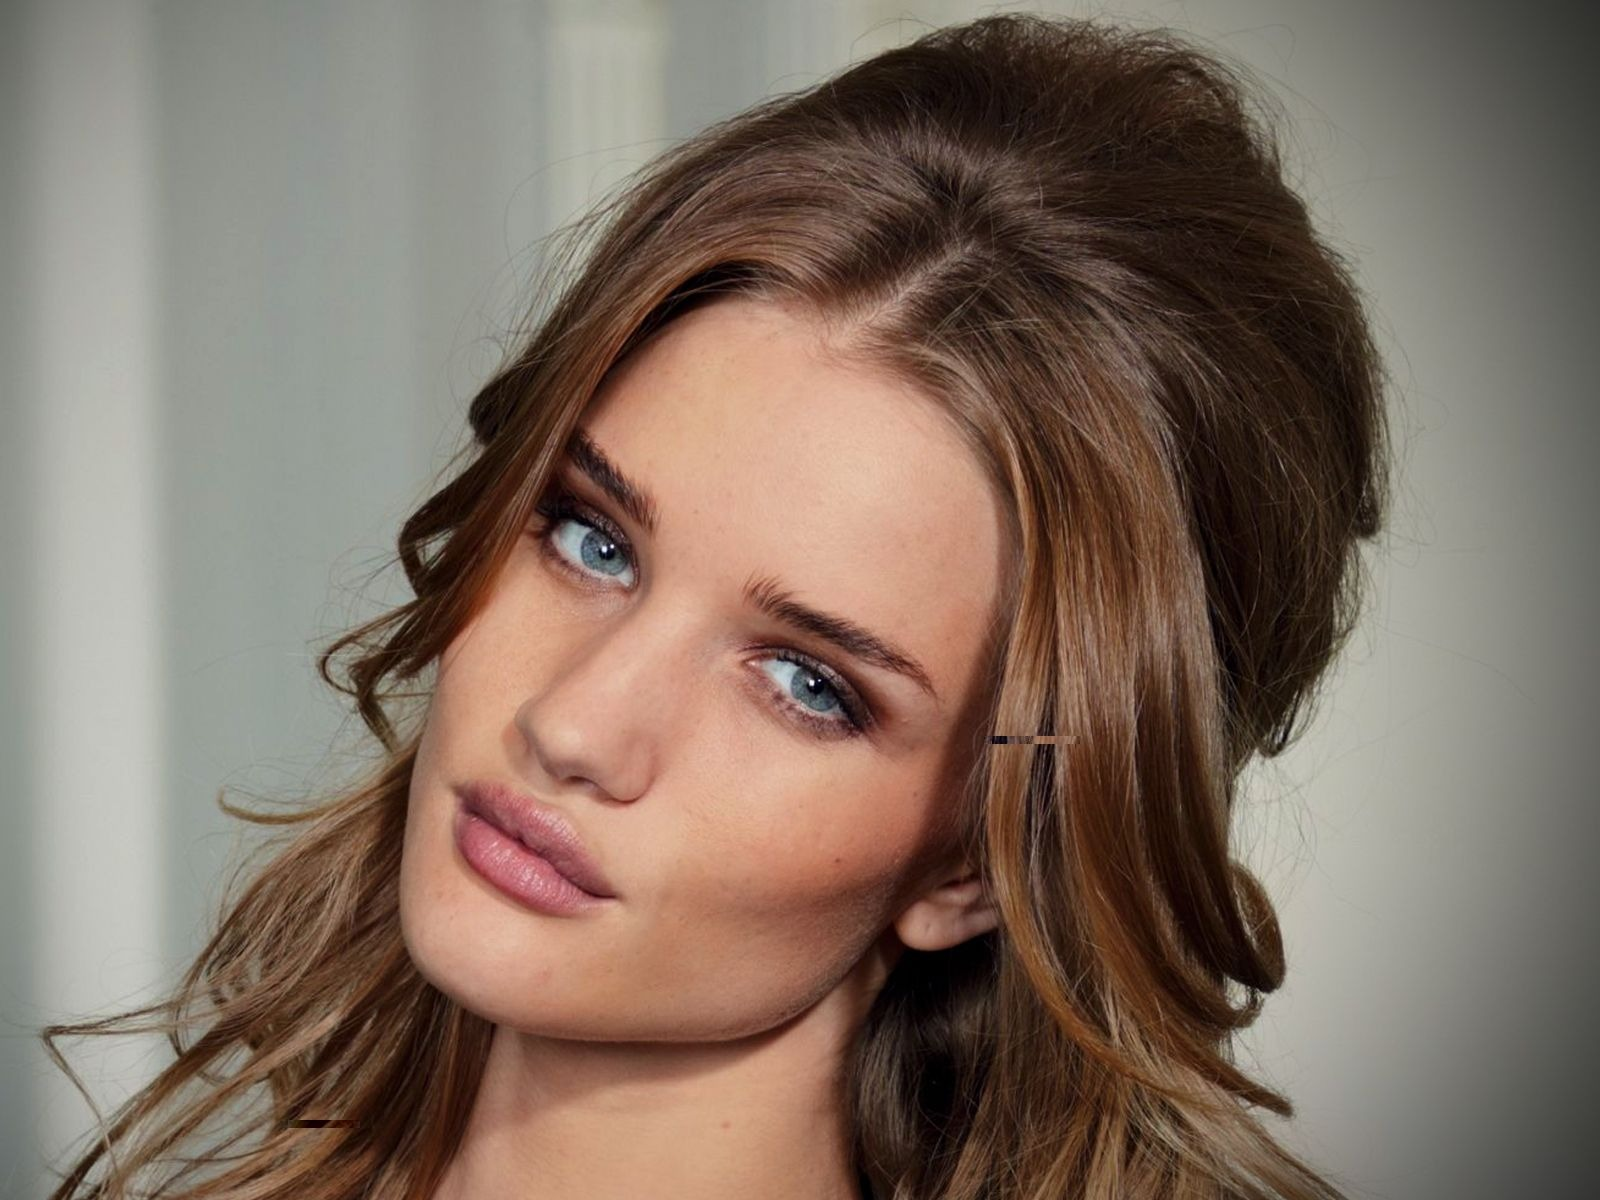 Rosie Huntington Whiteley #005 - 1600x1200 Wallpapers Pictures Photos Images